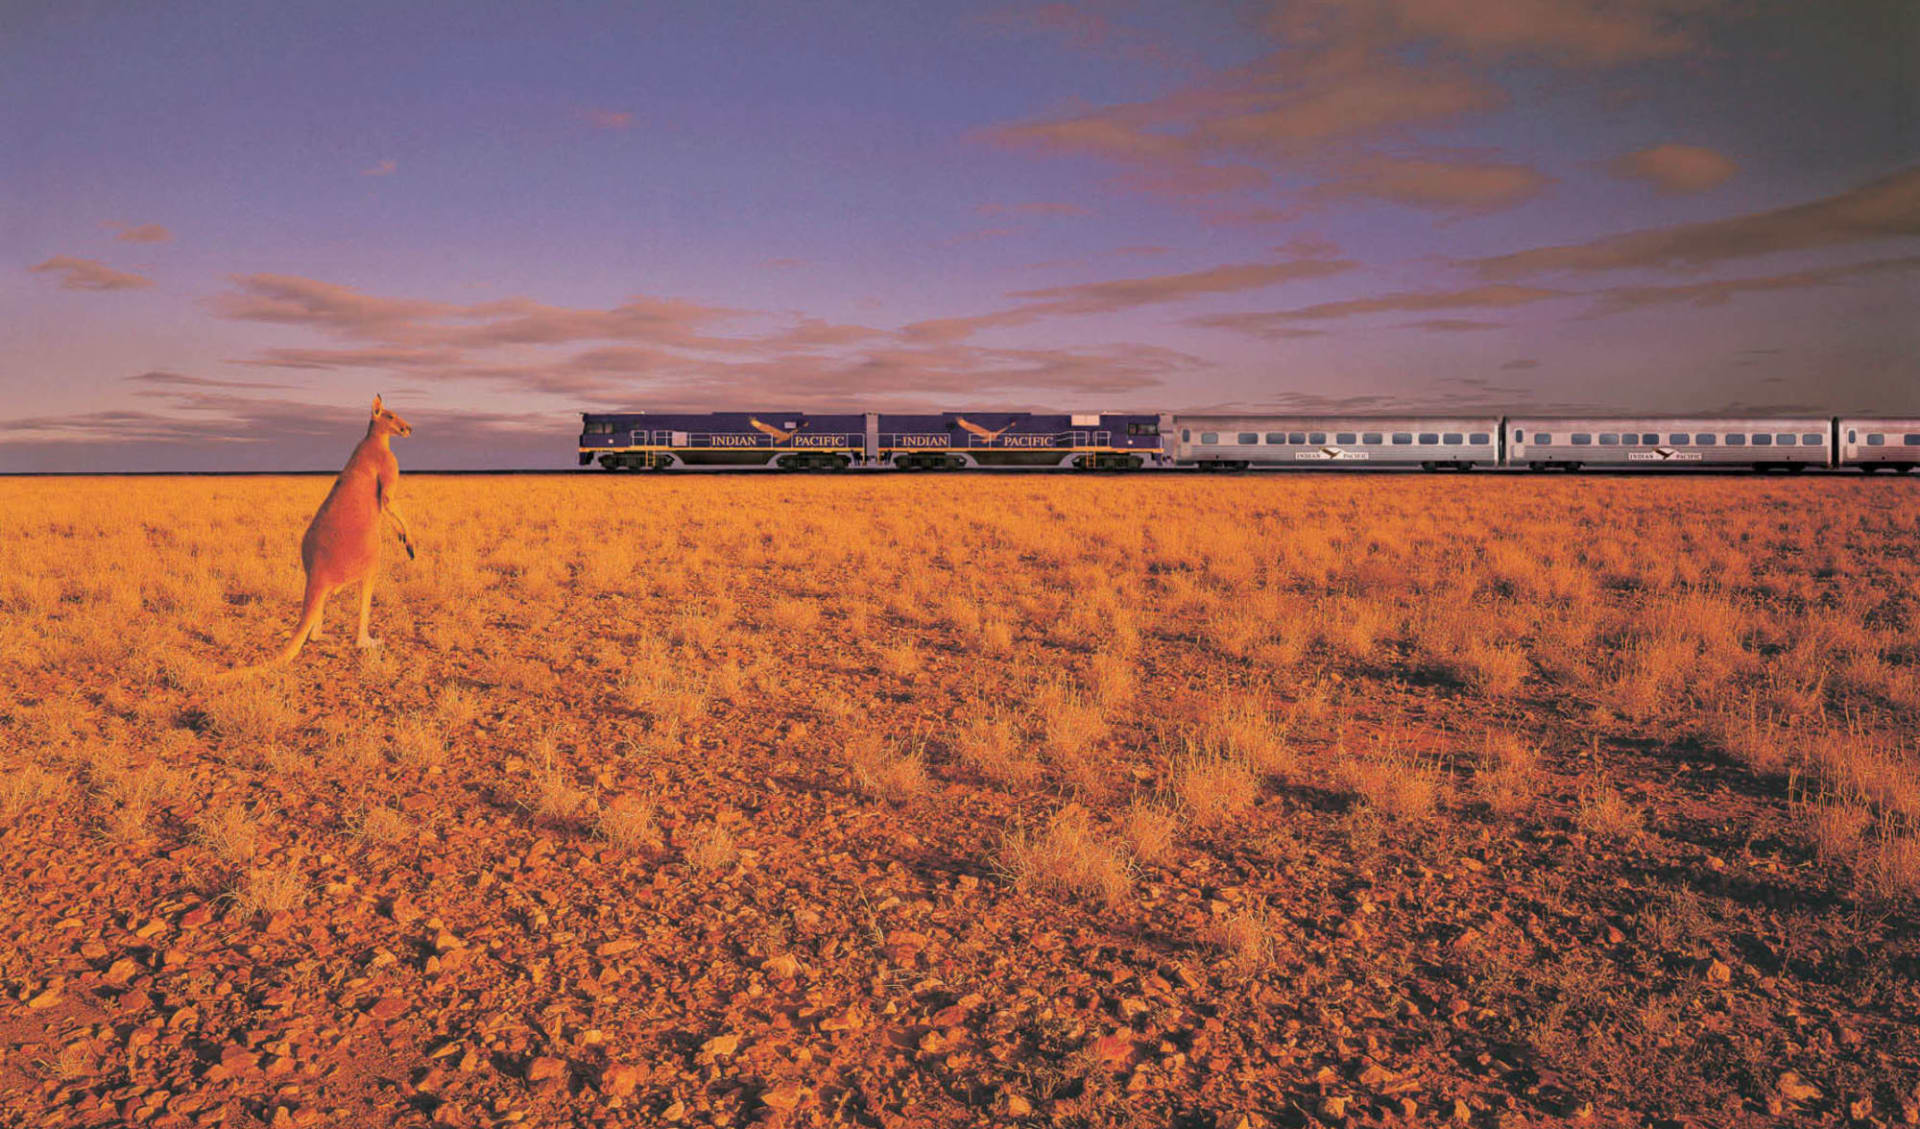 Indian Pacific von Adelaide nach Perth: Australien - Bahnreisen - Indian Pacific mit Känguruh